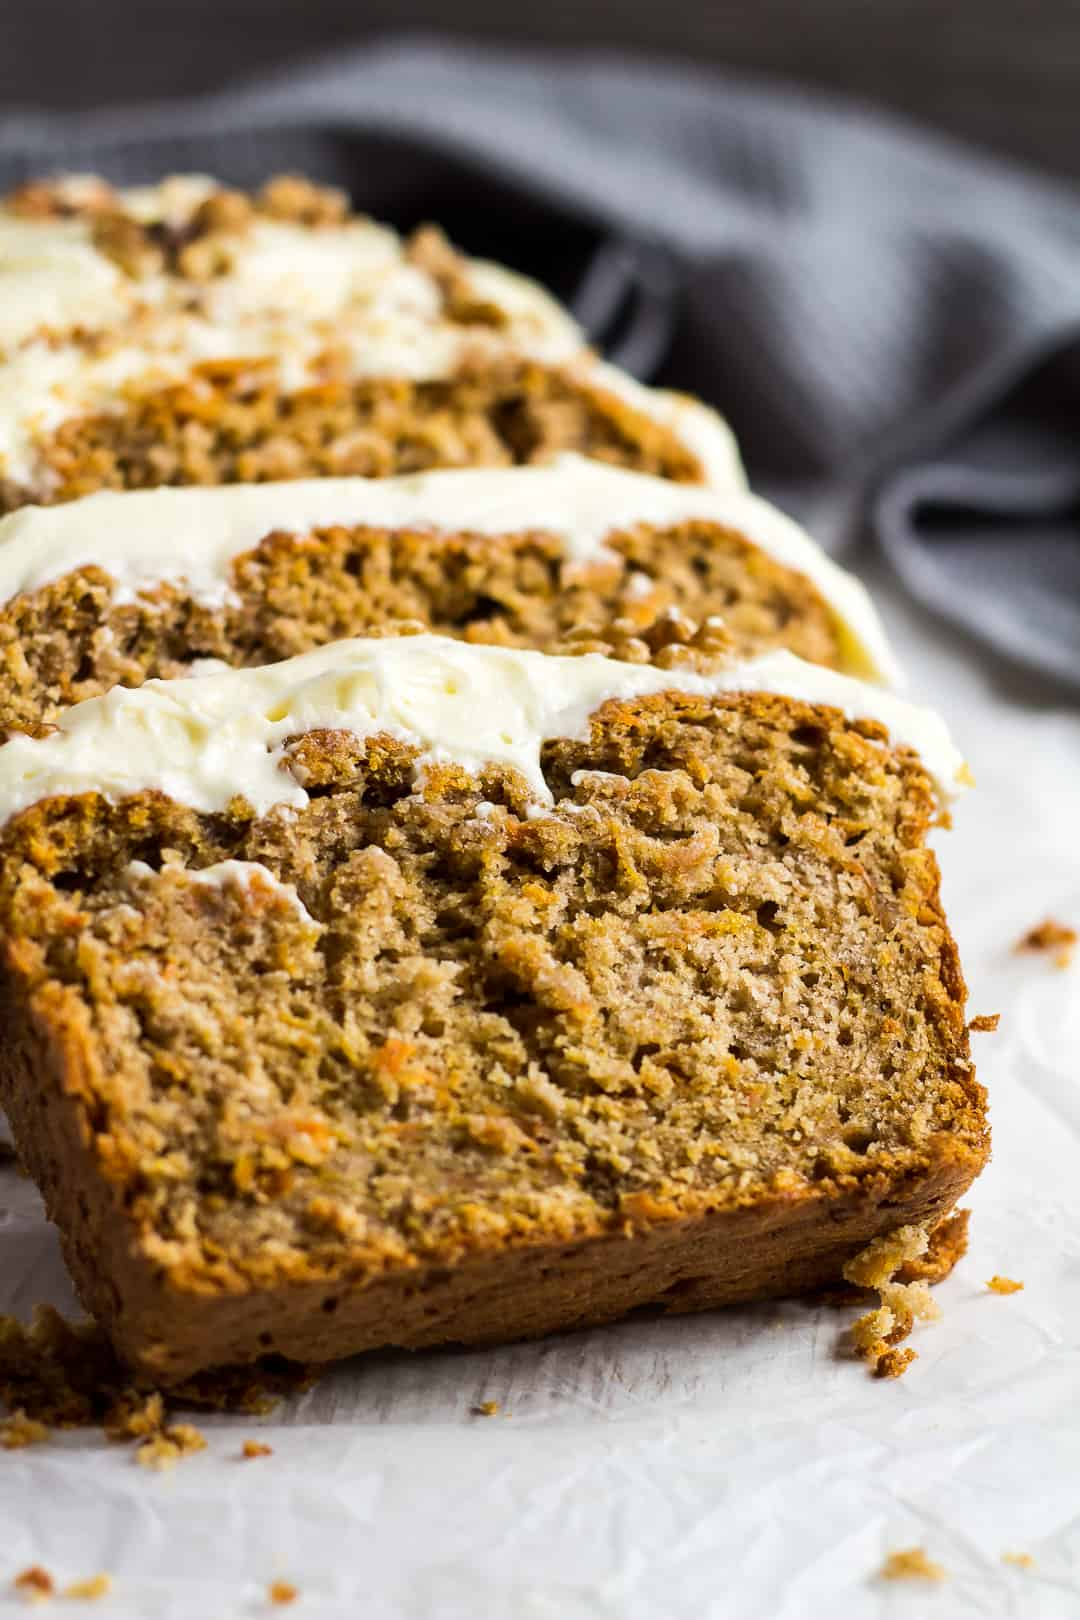 A row of Carrot Cake Loaf slices topped with cream cheese frosting overlapping each other.